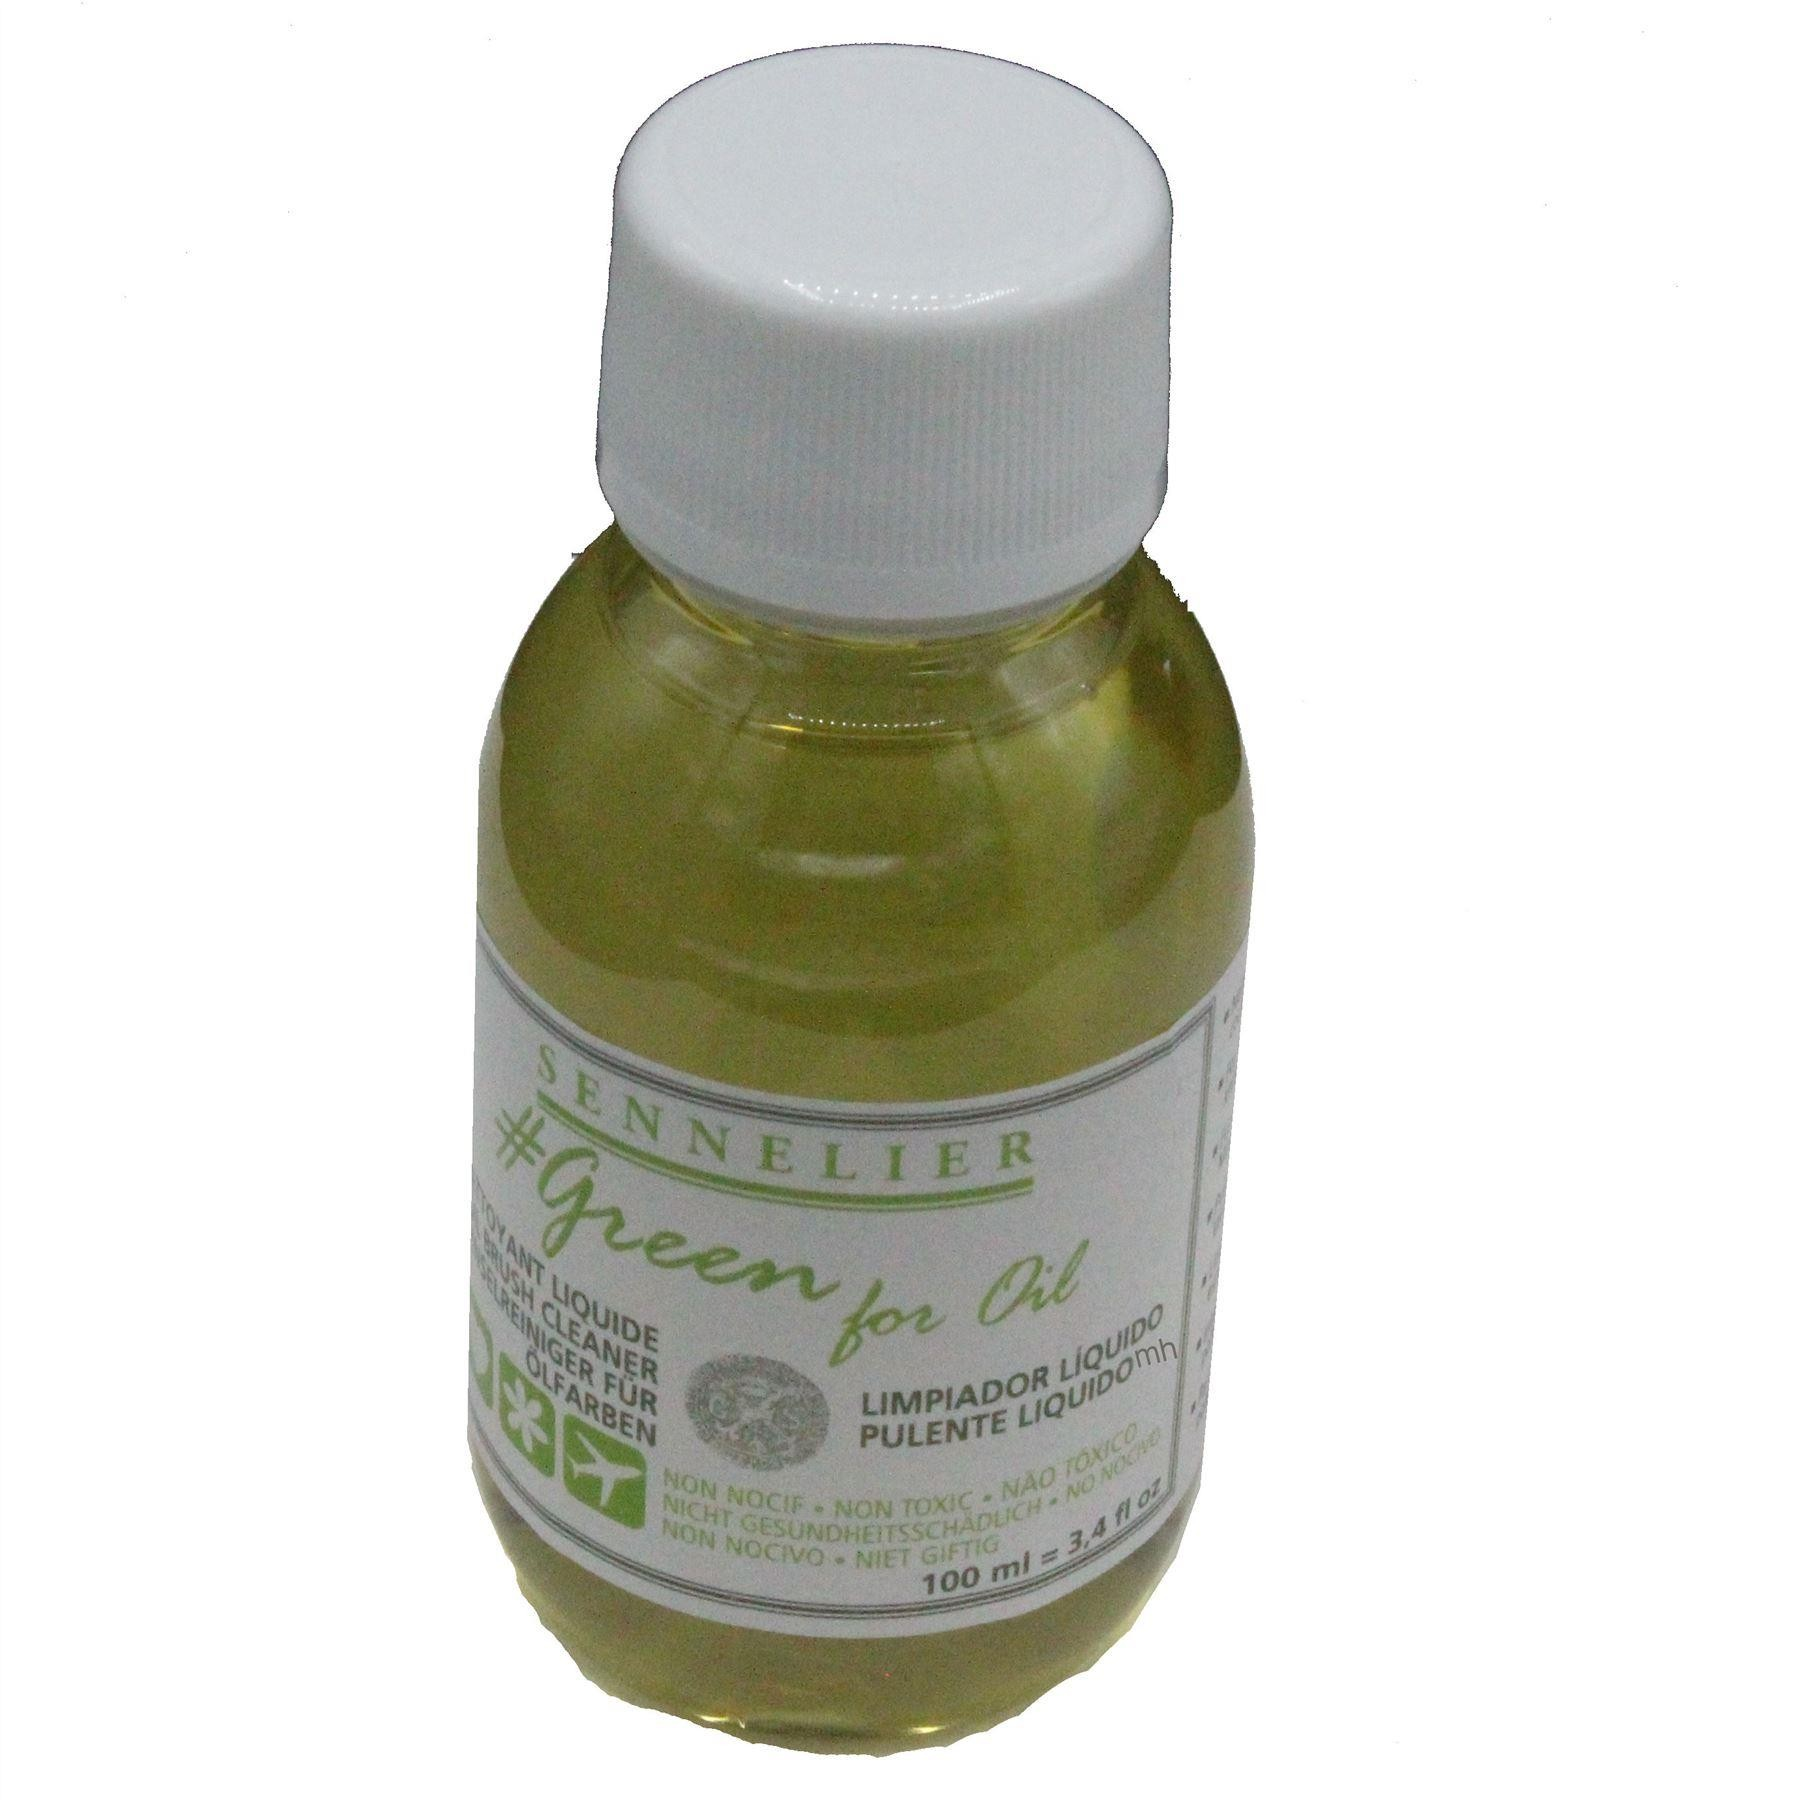 Sennelier green for oil natural oil paint brush cleaner